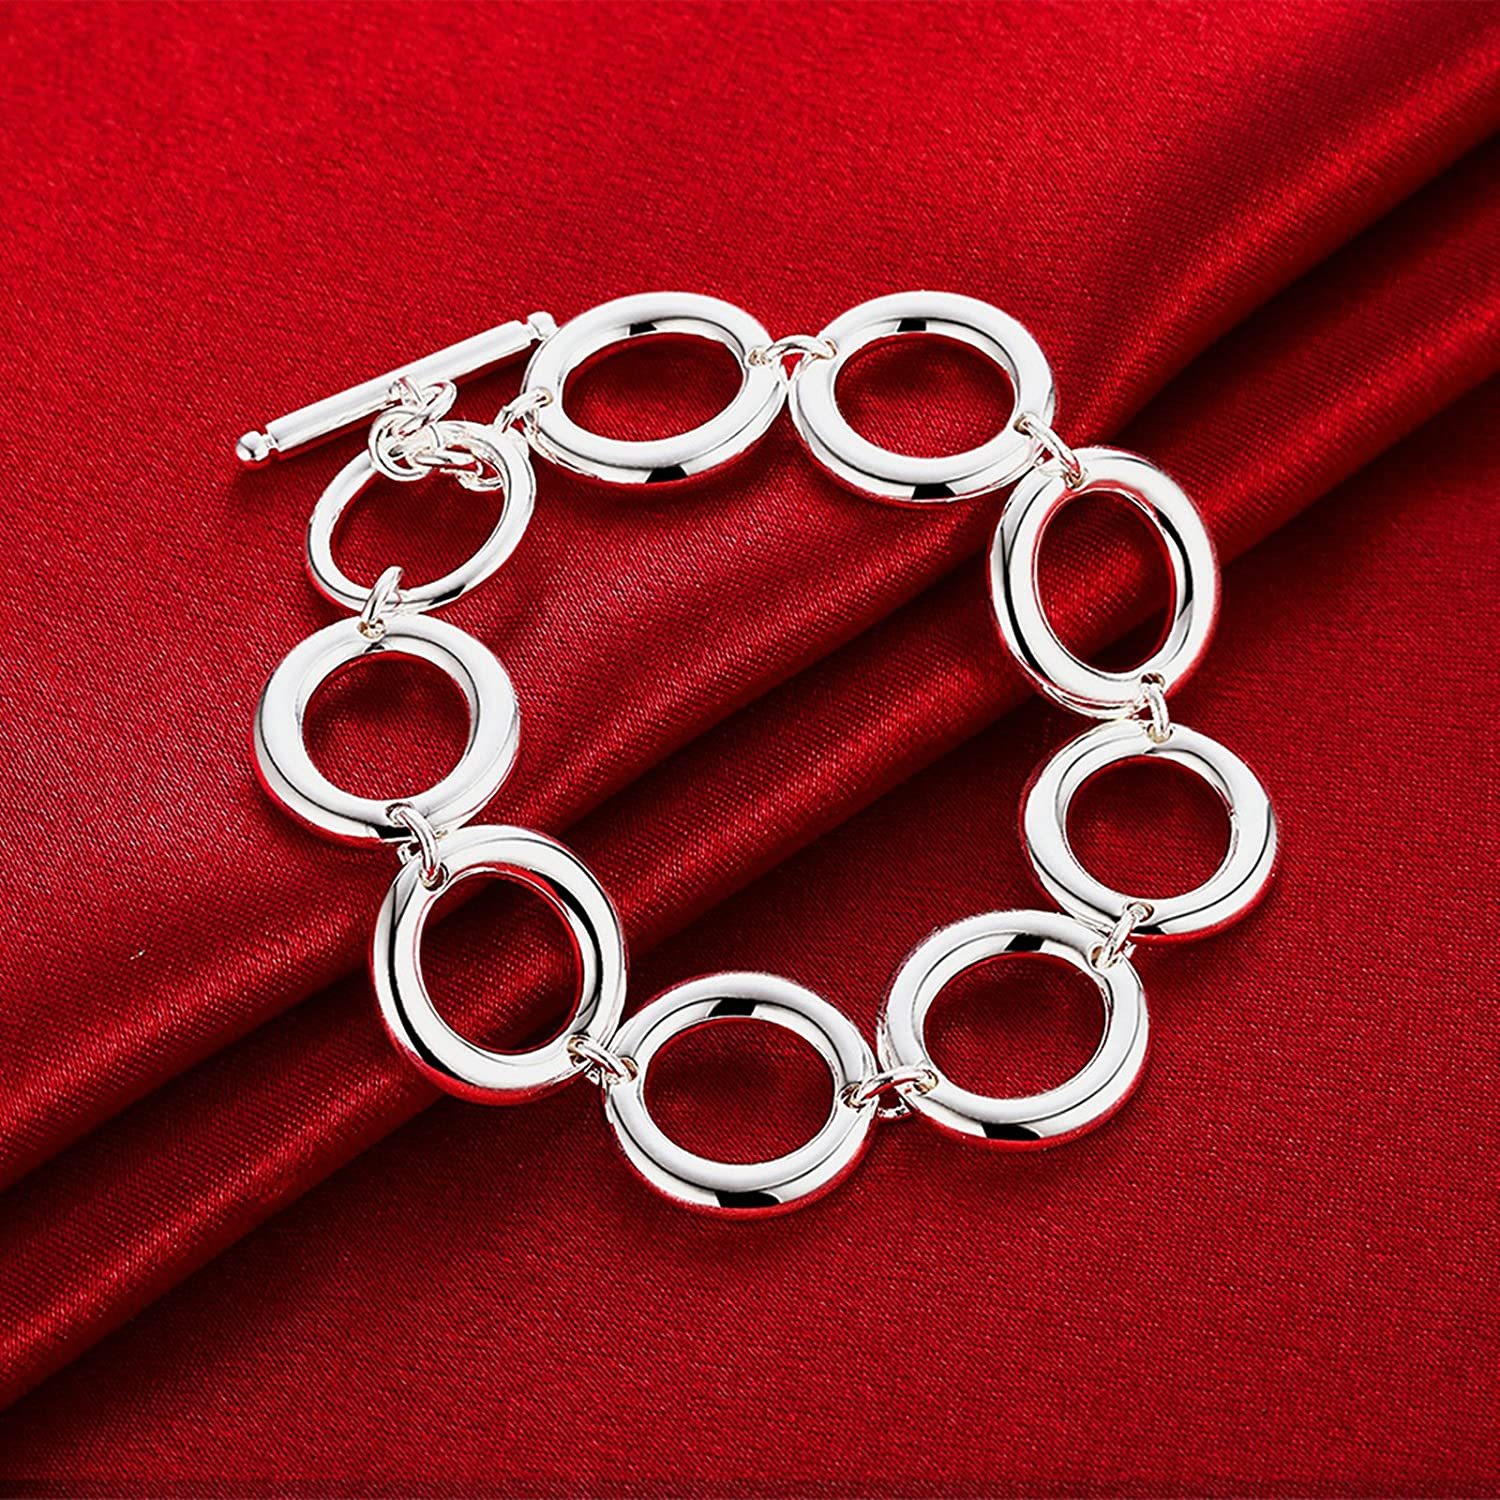 Aokarry Jewelry Link Bracelet,Wedding Bracelet Bangle Copper Circle Chain n Silver Length 8 in